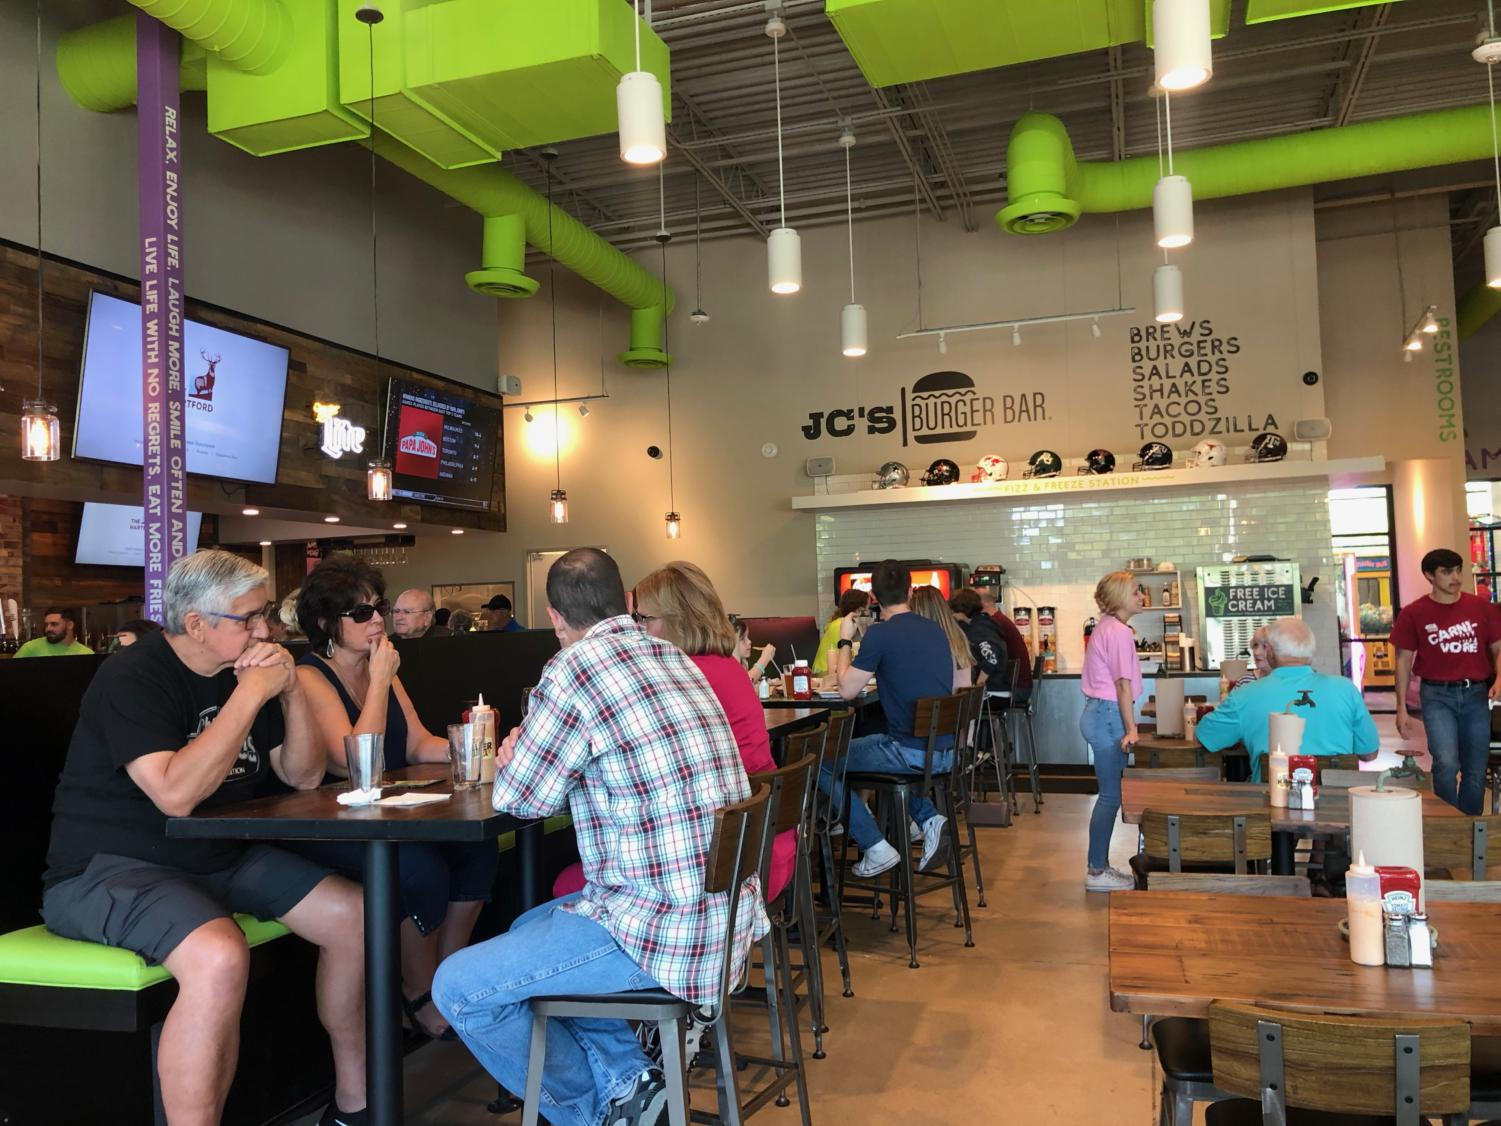 JC's Burger Bar opened its Coppell location on April 2, which is open from 10:30 a.m. to 10 p.m. daily. The restaurant has a wide variety of menu options, complimentary ice cream and an arcade.